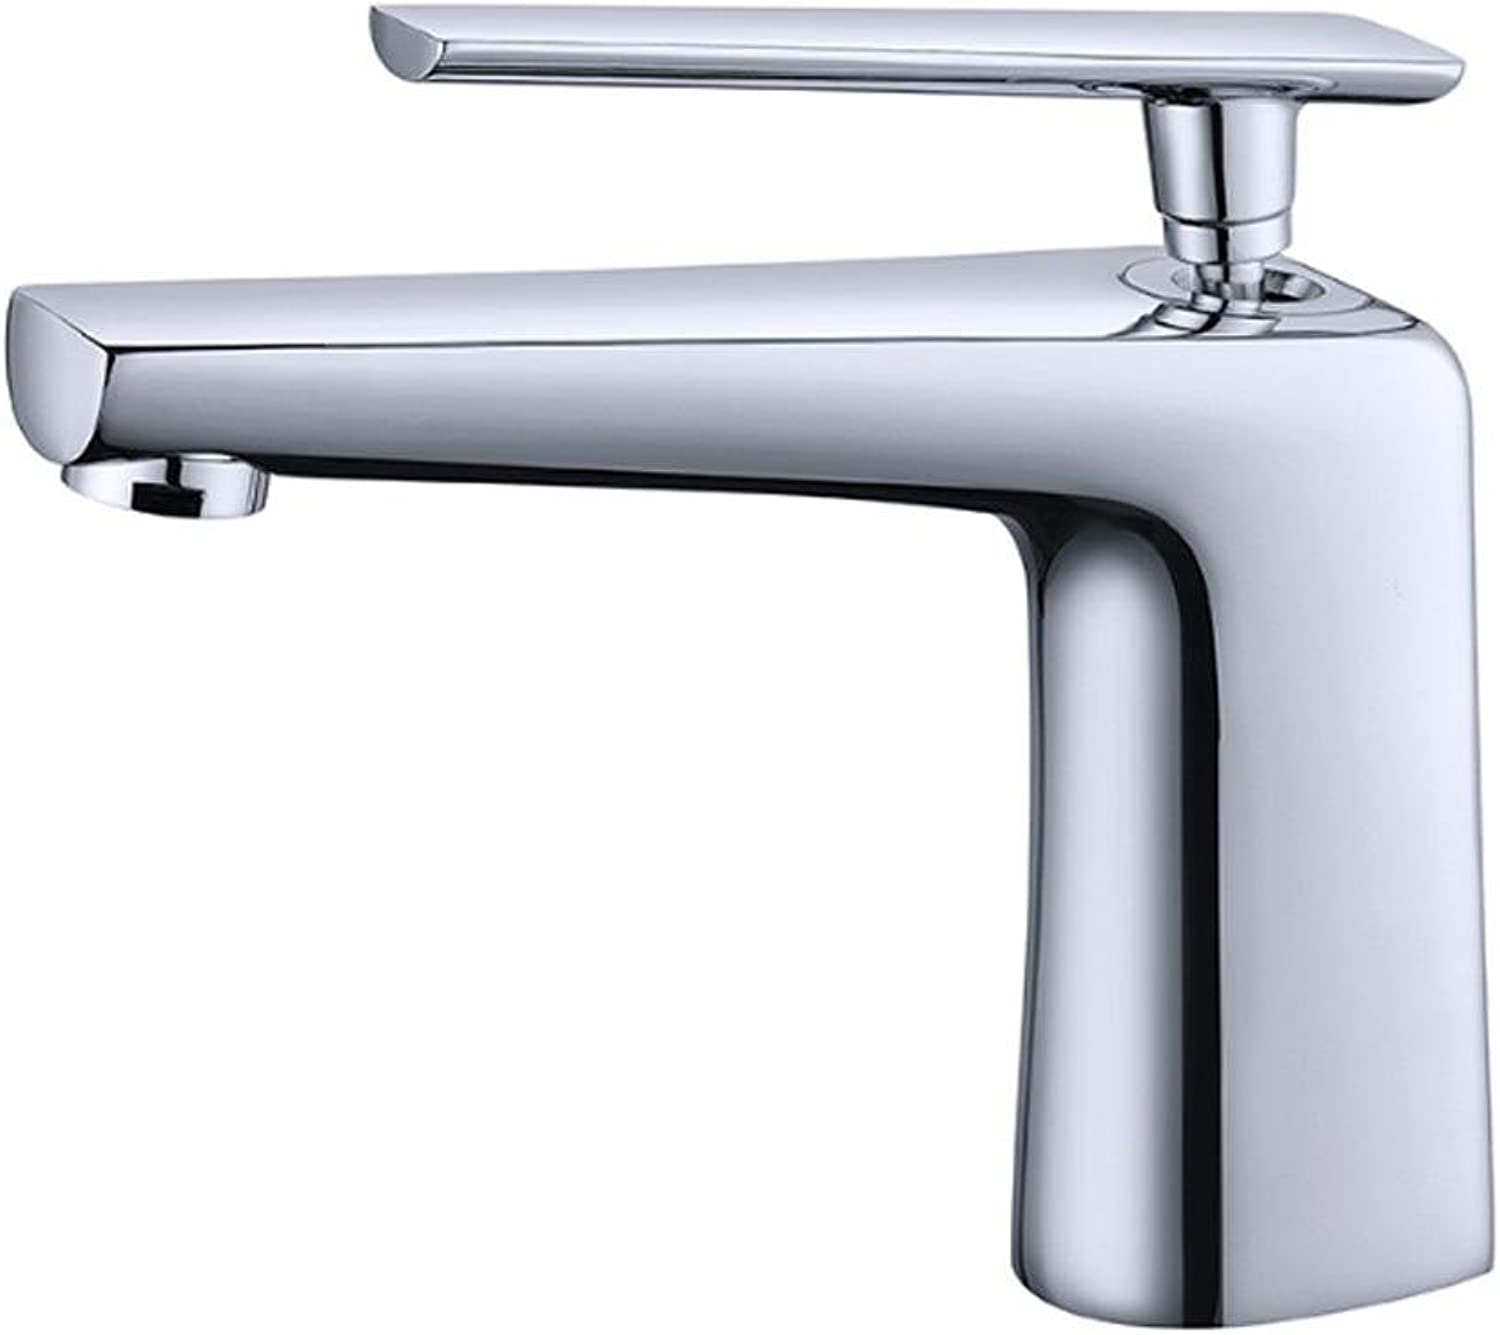 TSAR003 High And Low Type Of Copper Modern Minimalist Bathroom Basin Hot And Cold Mixed Water Faucet , Low